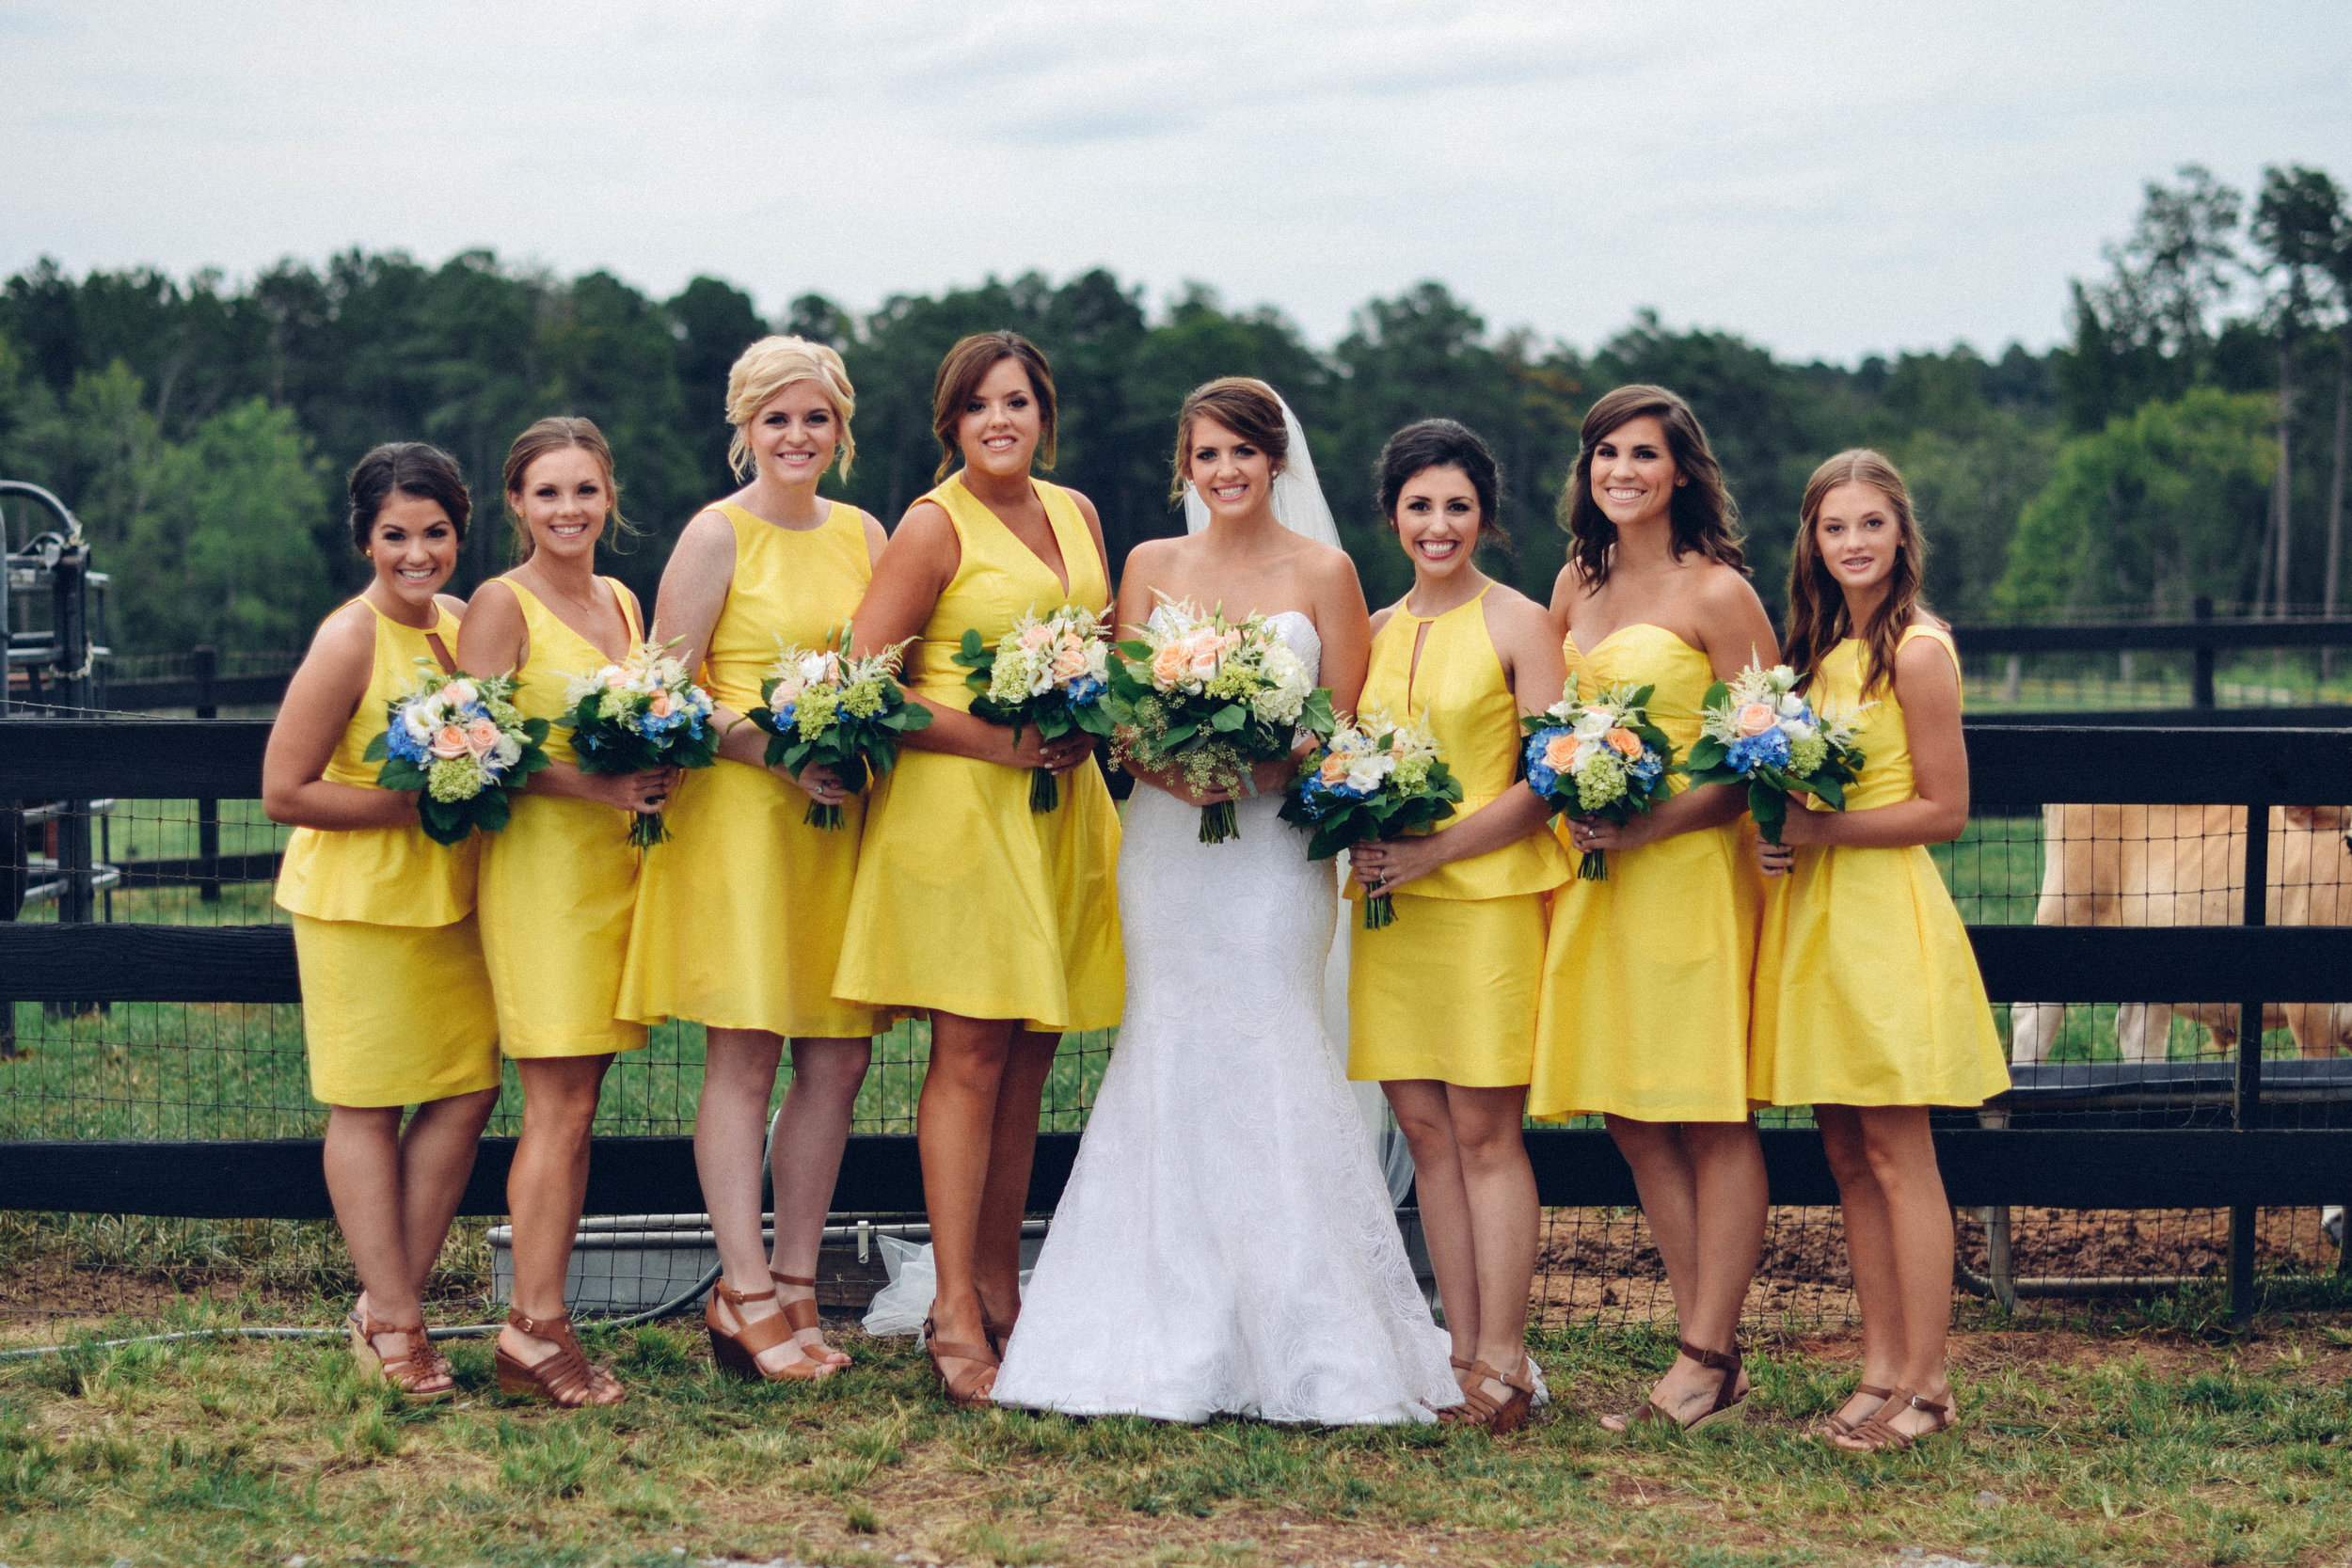 bride-bridesmaids-colorful-wedding-greg-boulus-events-augusta-georgia